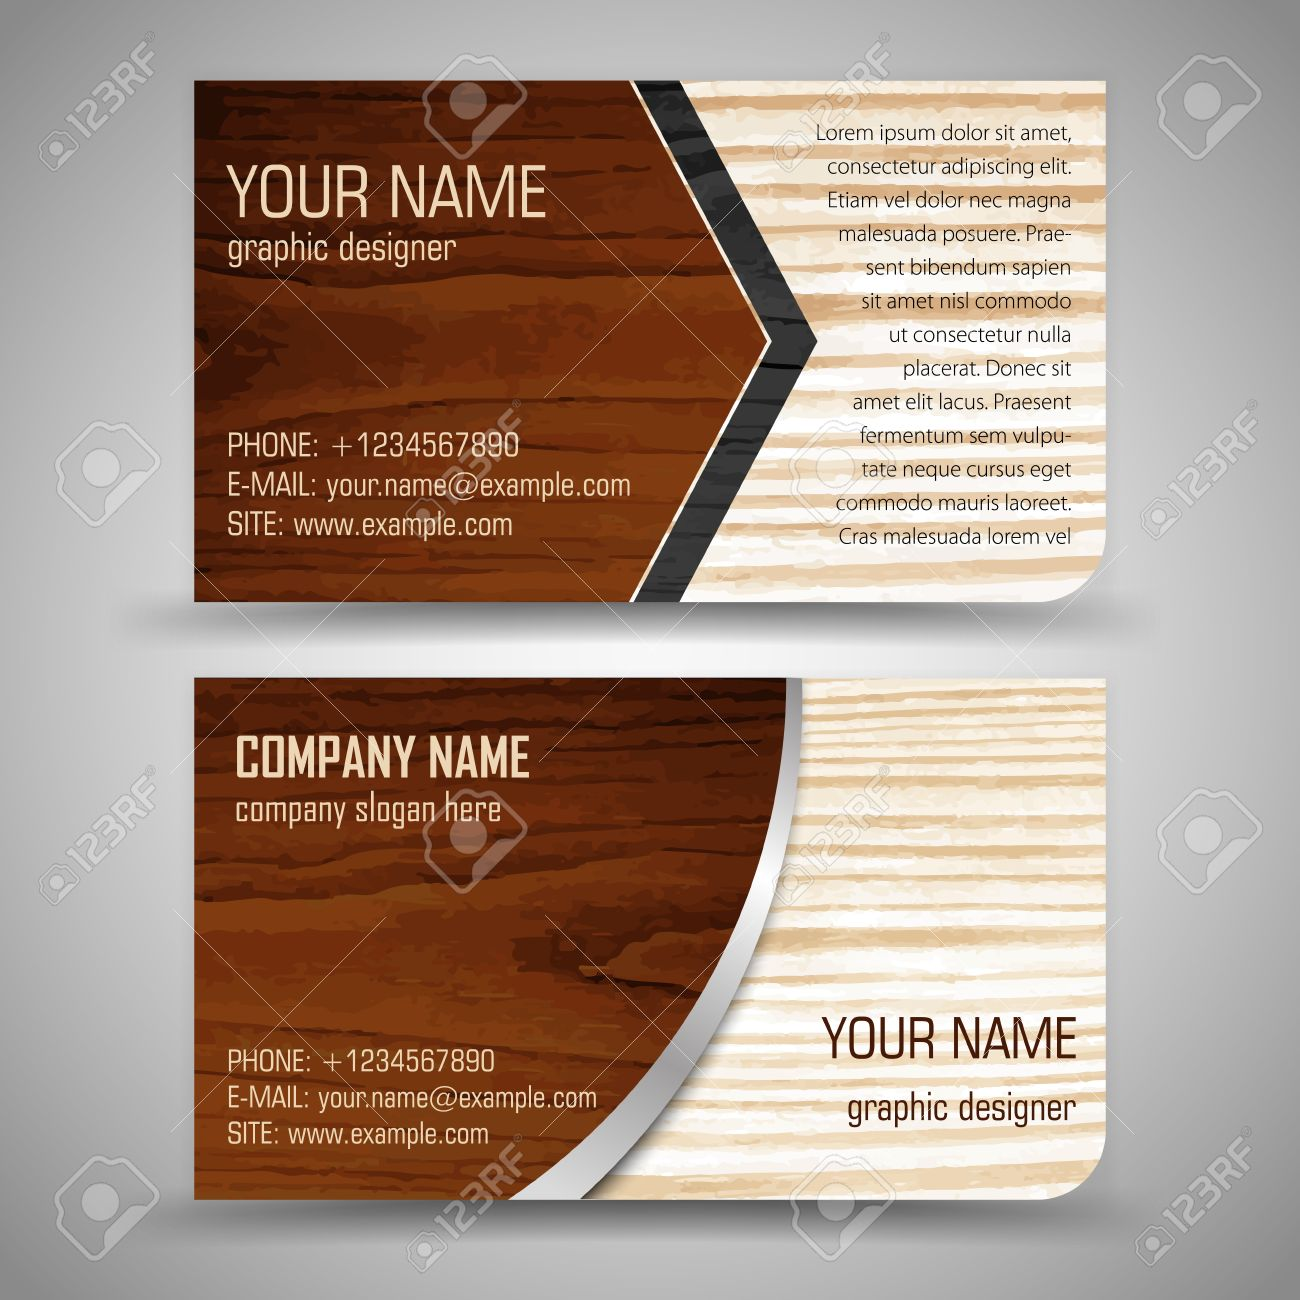 Abstract Creative Business Cards (set Template) Royalty Free ...